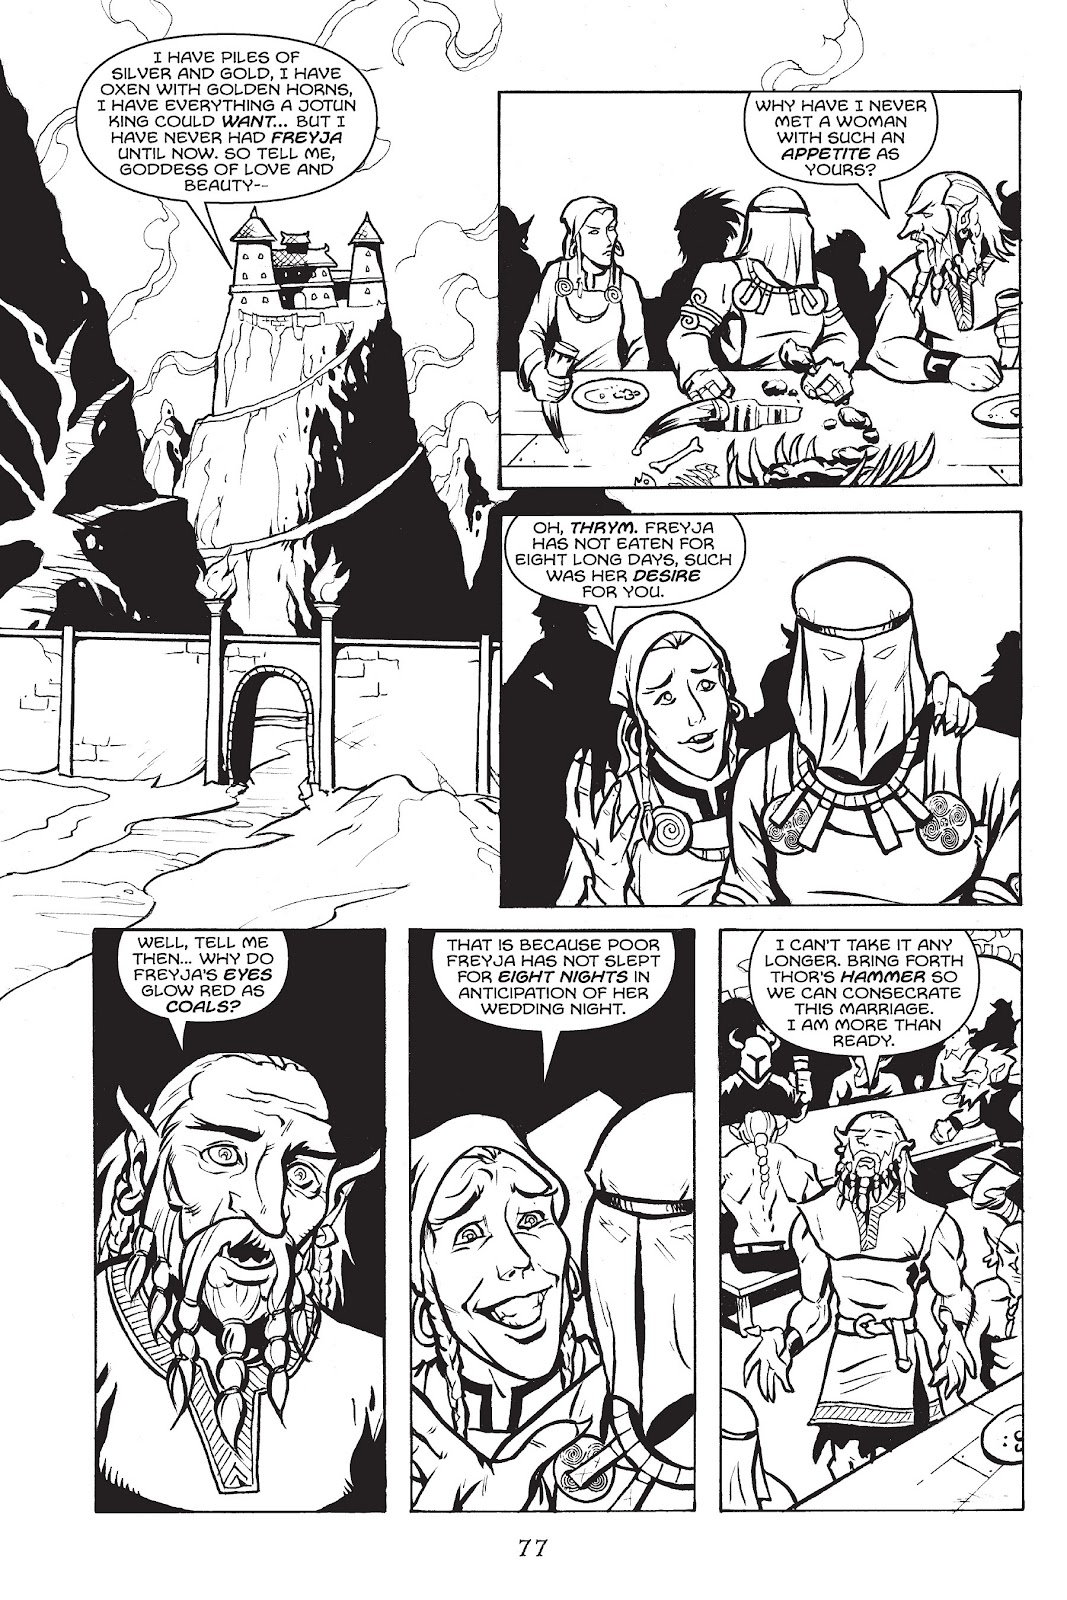 Read online Gods of Asgard comic -  Issue # TPB (Part 1) - 78